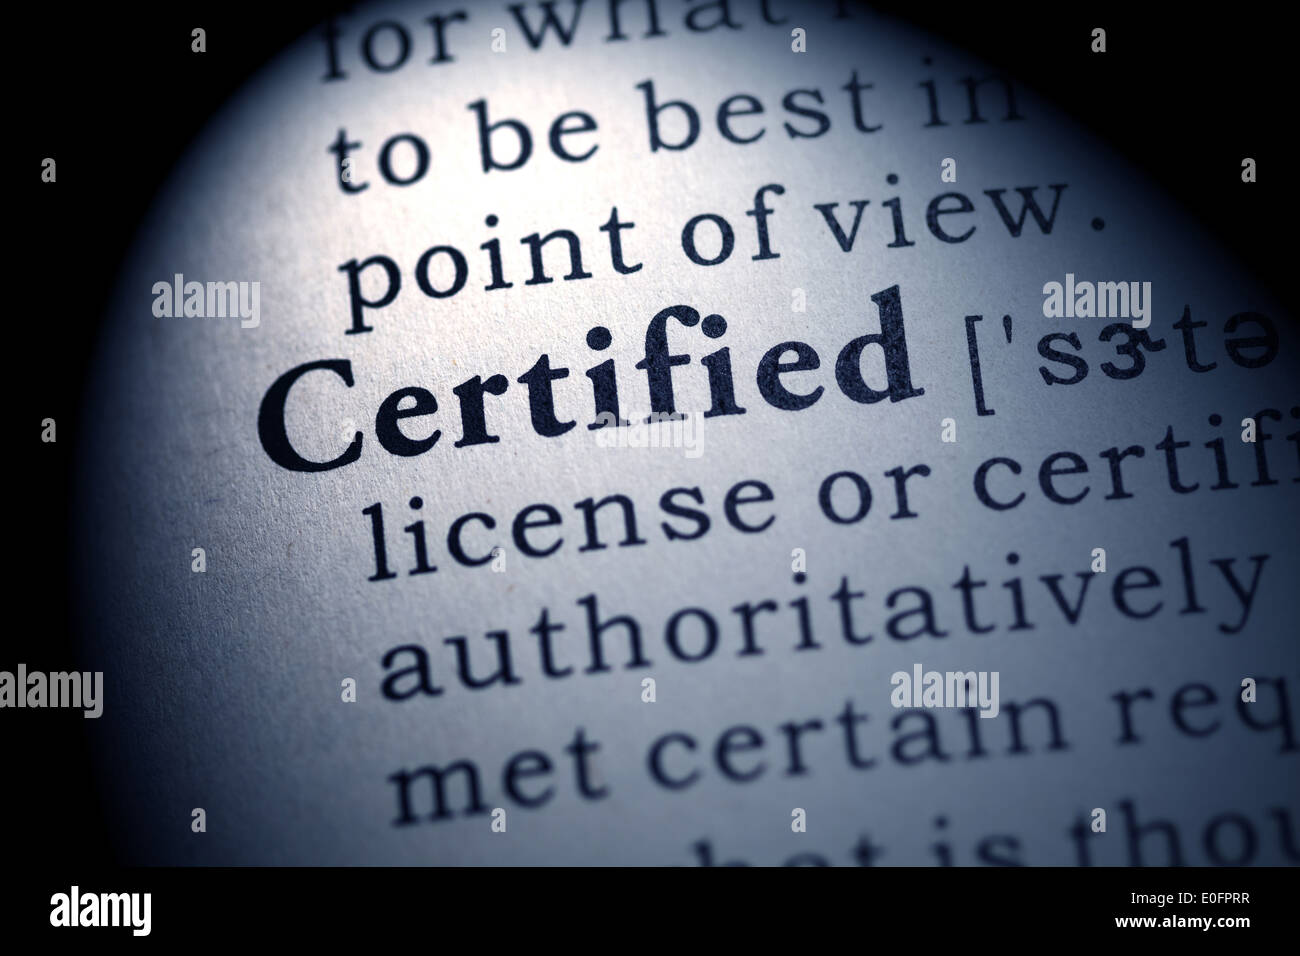 Fake Dictionary, Dictionary definition of the word certified. - Stock Image